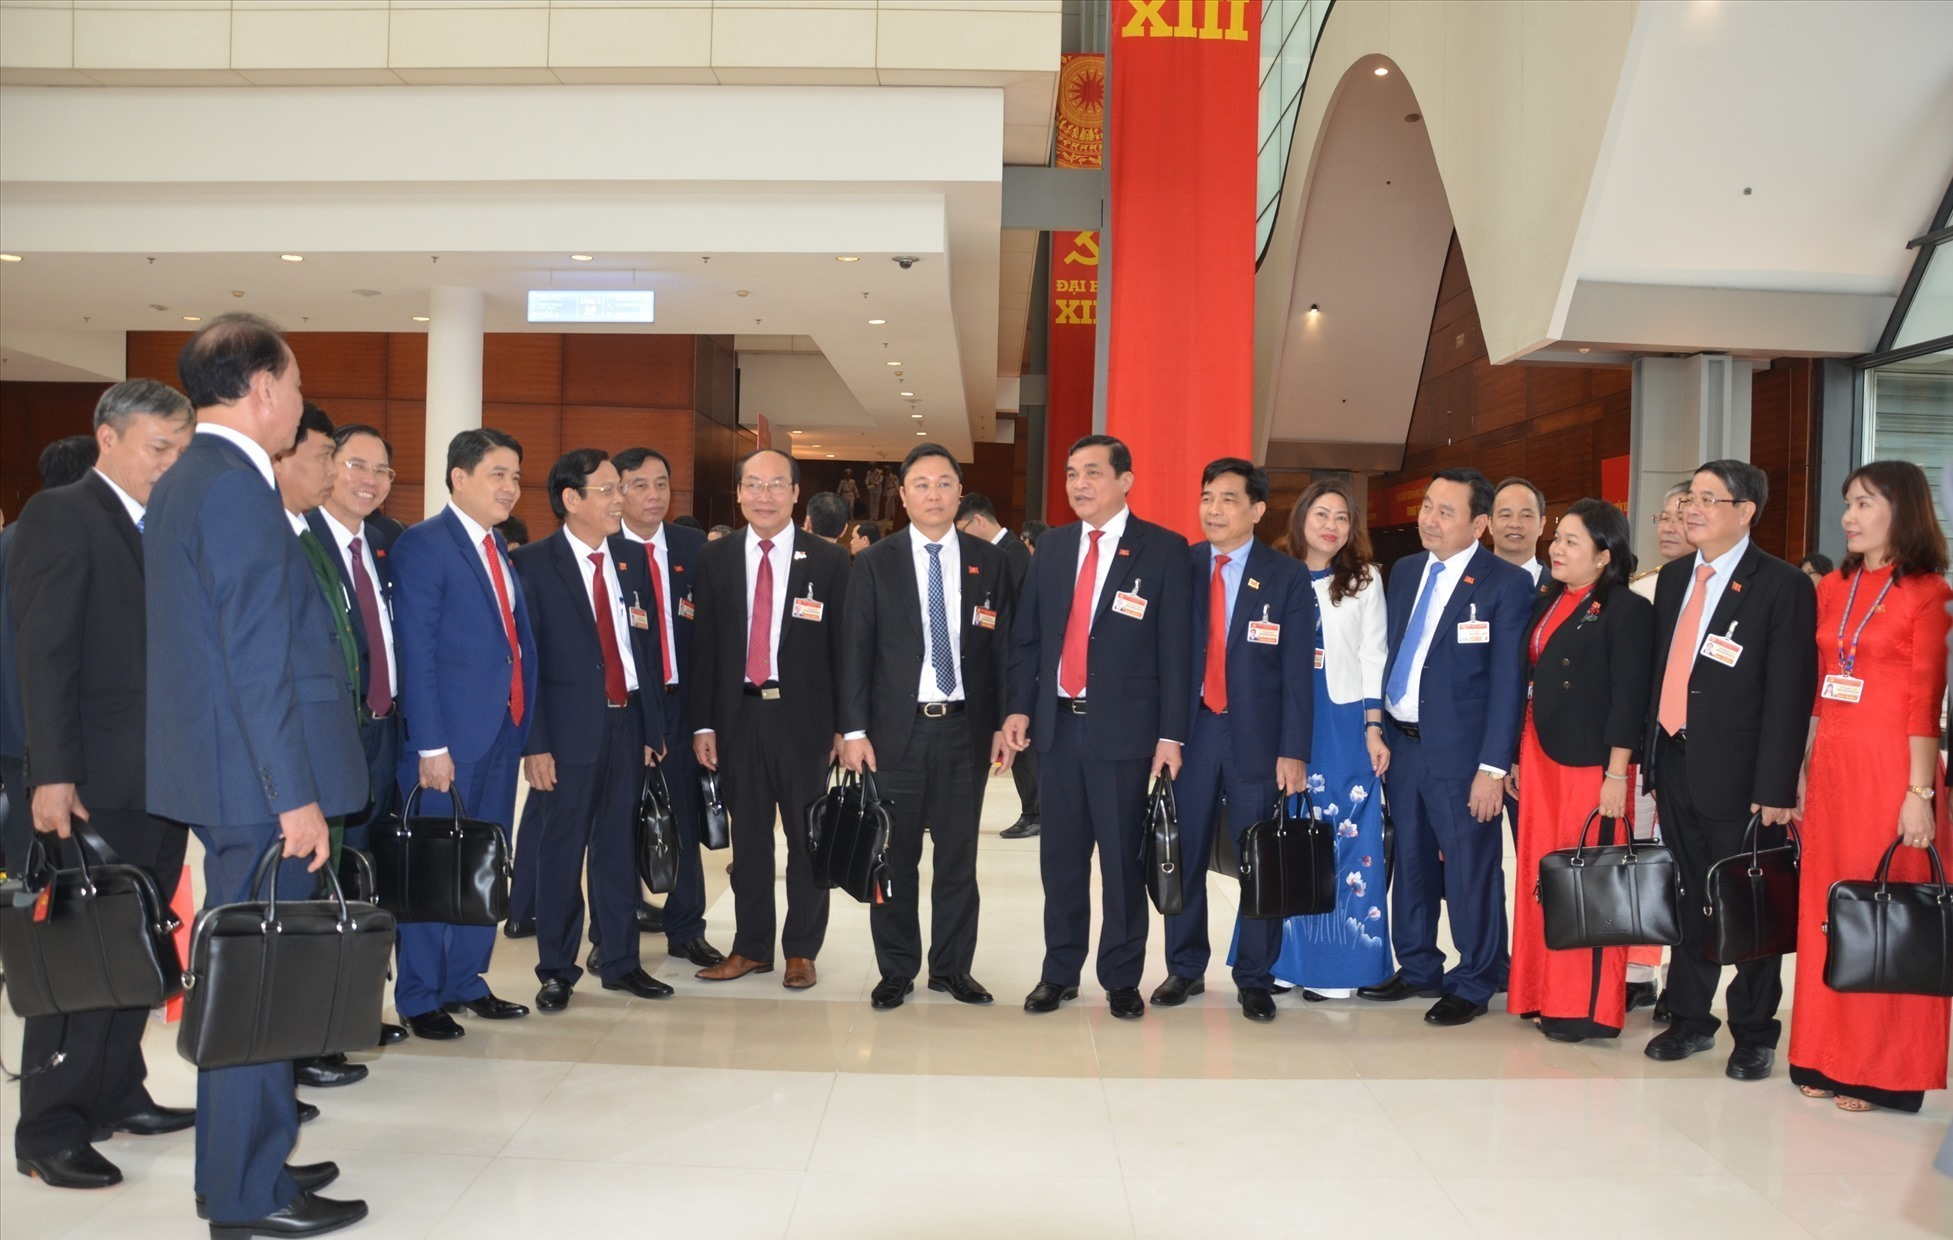 Delegation of the Party Committee of Quang Nam province at the National Conference Centre, where the 13th National Congress of the Communist Party of Vietnam takes place